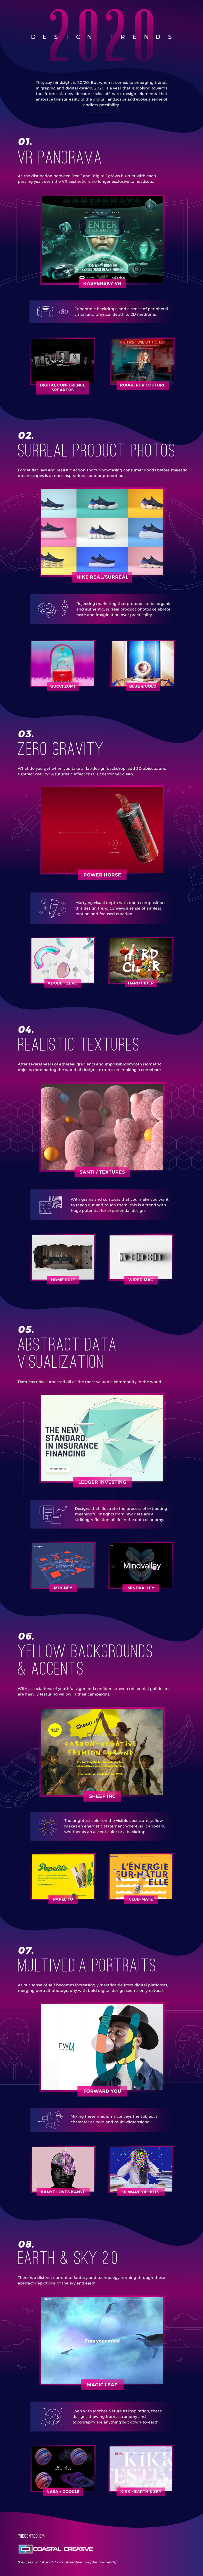 Infographic: 2020 design trends